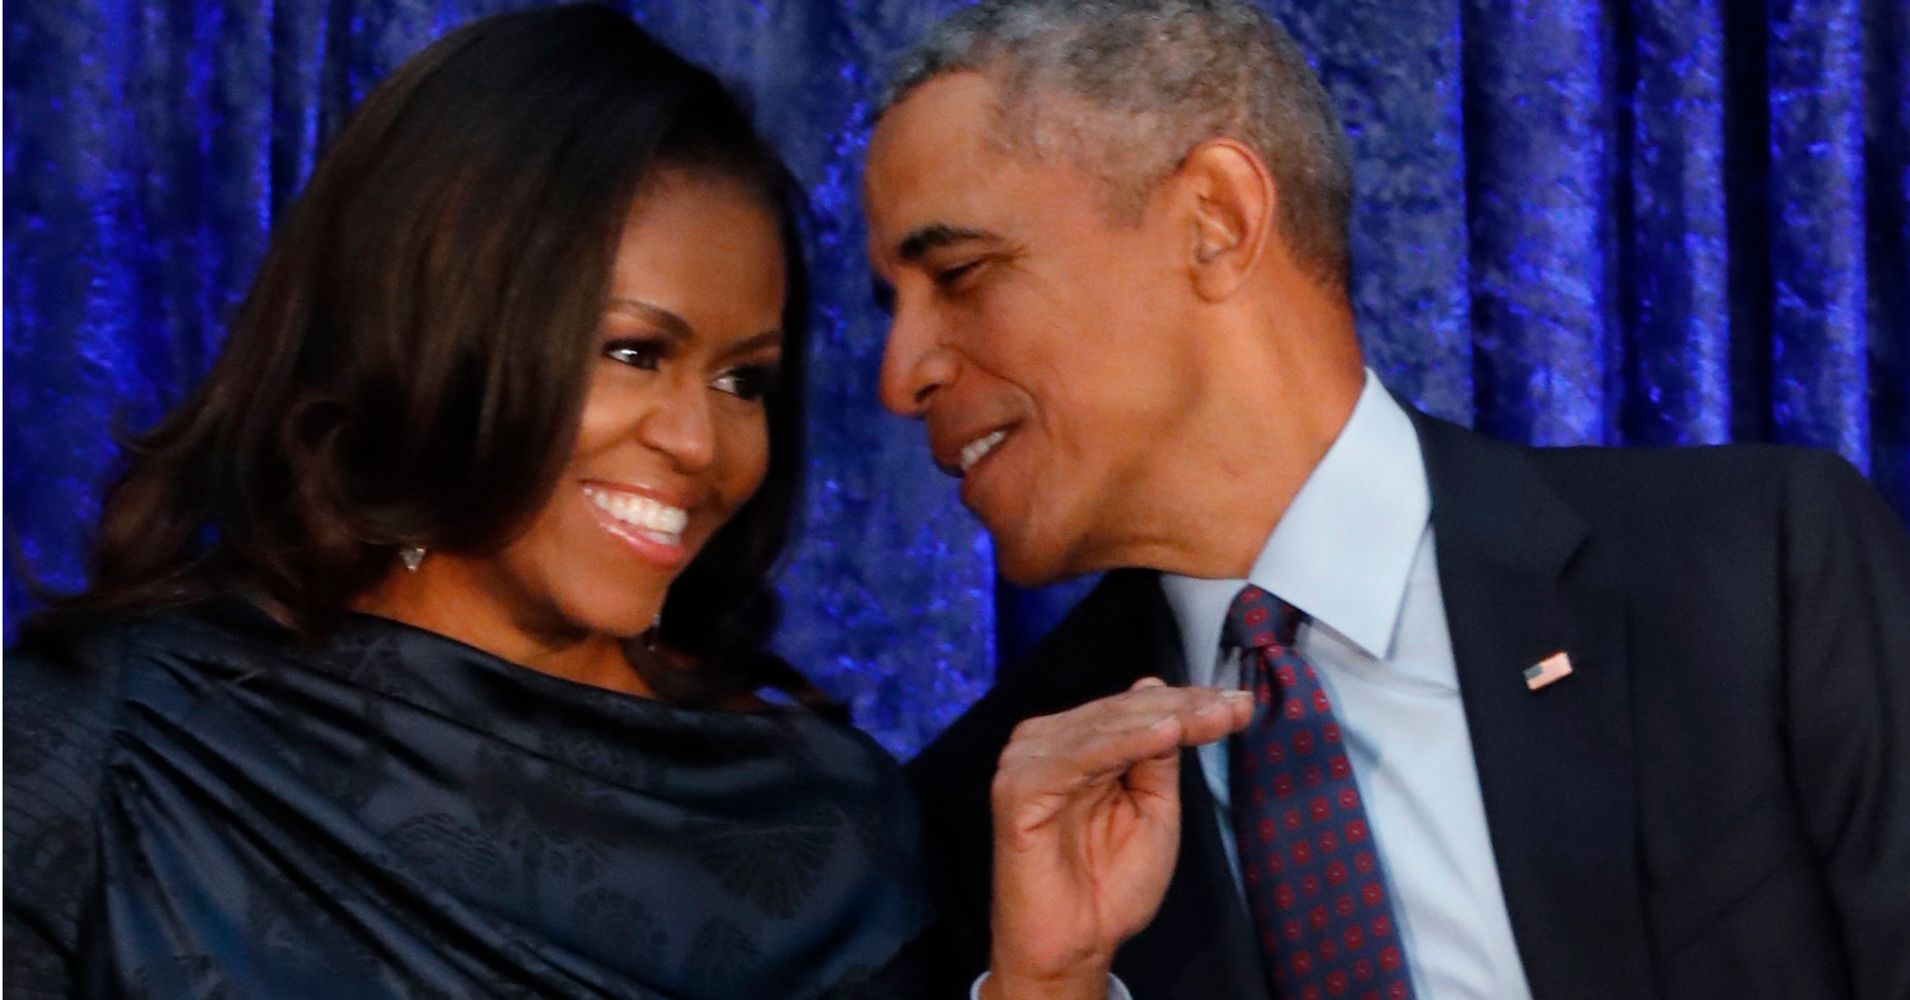 See Barack And Michelle Obama's Official Portraits